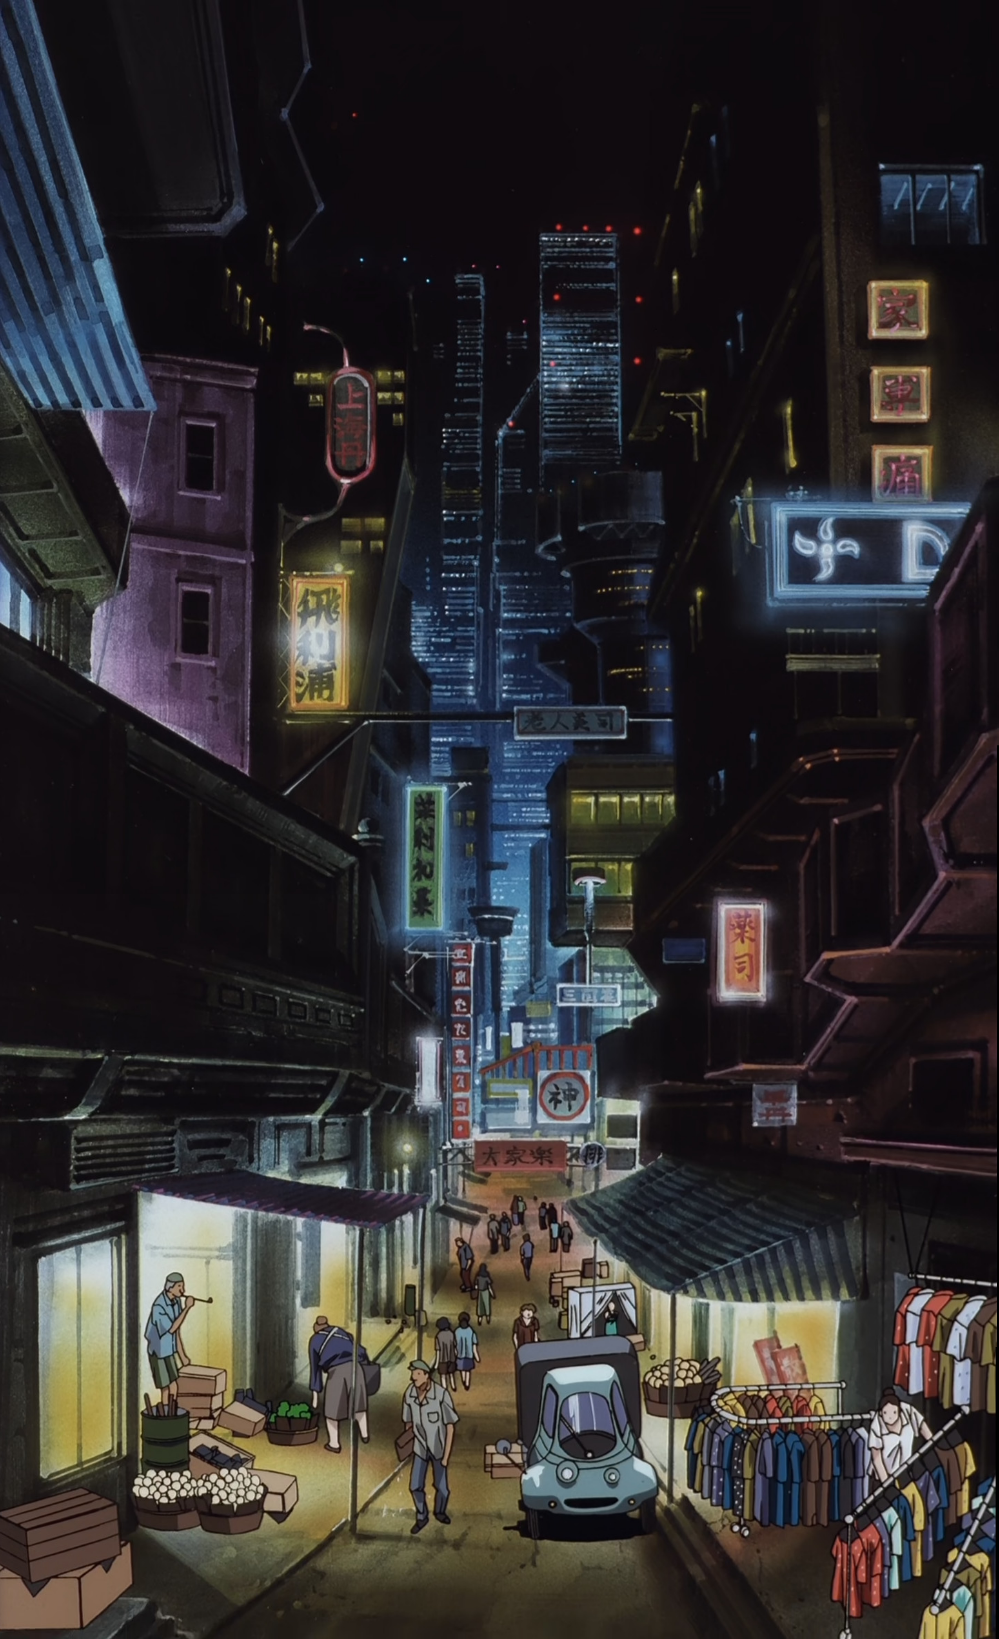 A long vertical shot of a market street in a city at night. People are walking down the road with vendors standing in the street. Skyscrapers are visible in the distance.